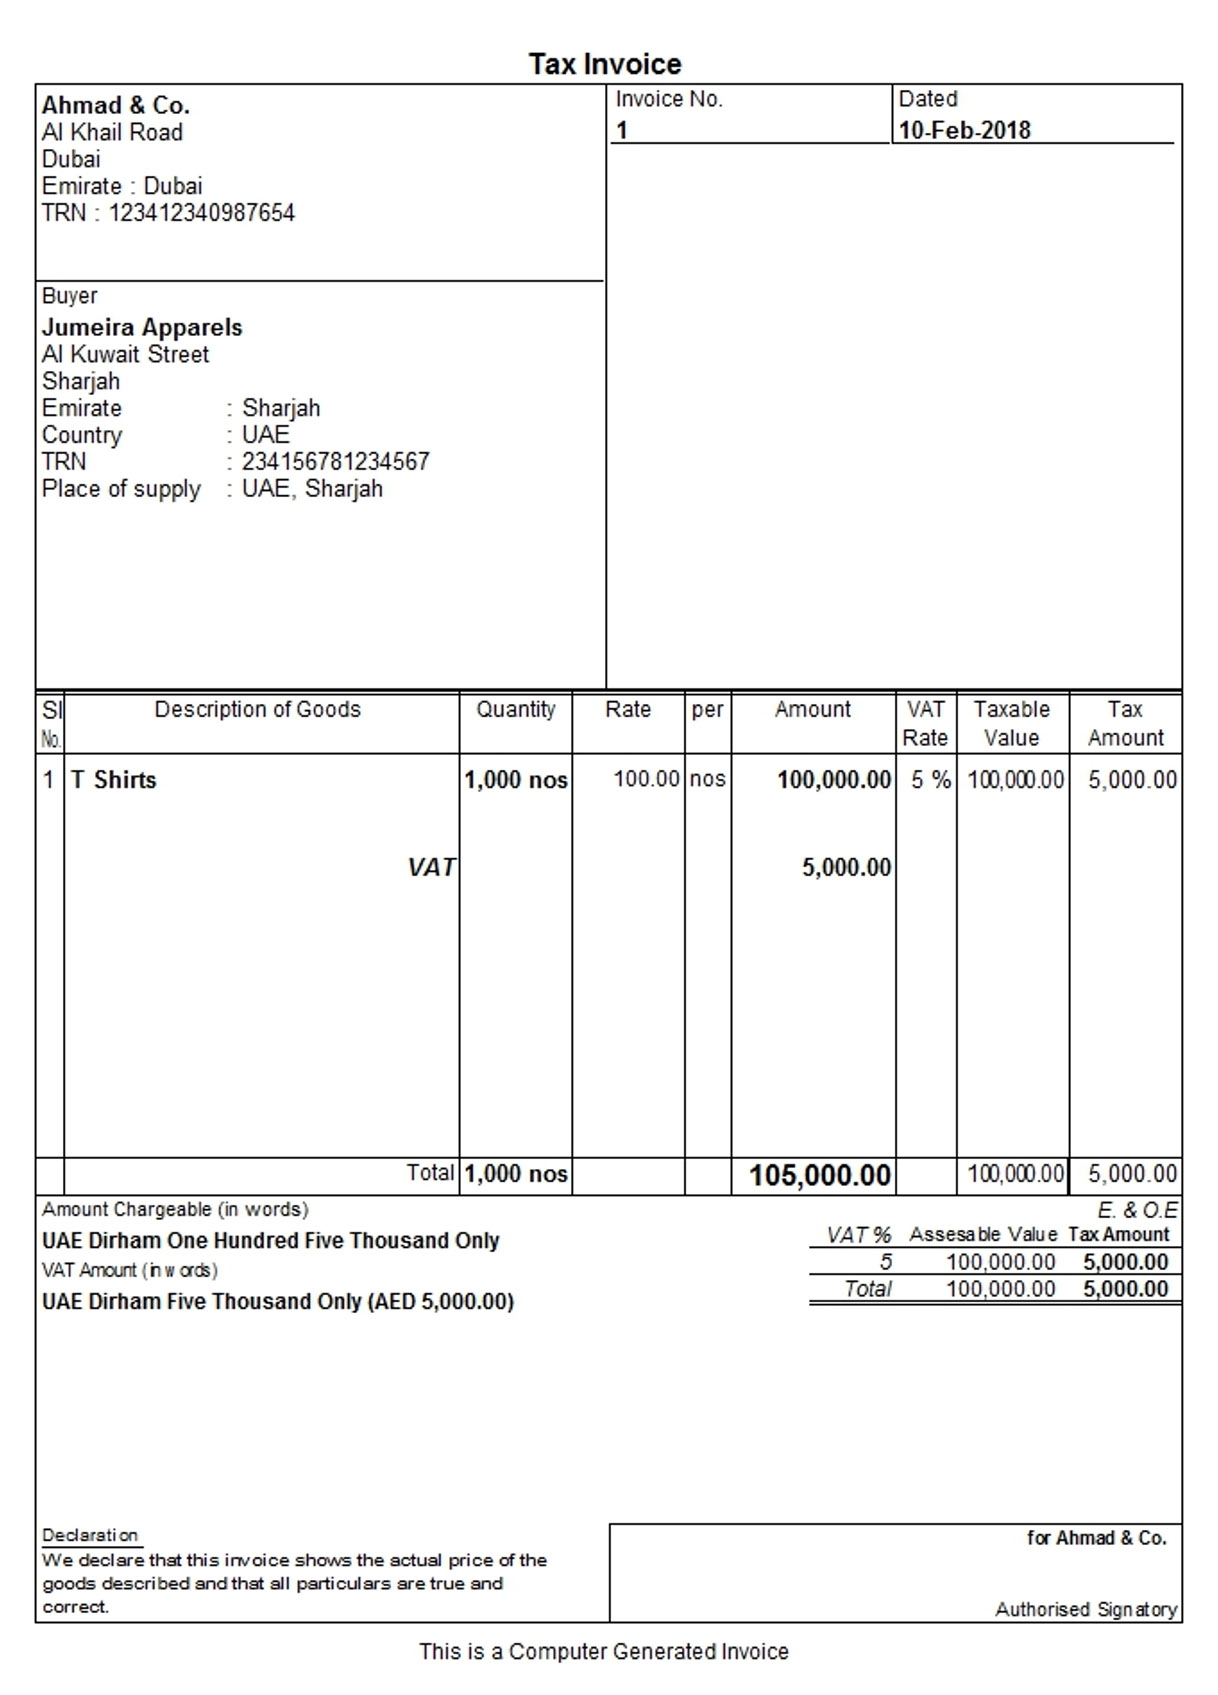 tax invoice to a registered customer under vat in uae tax invoice in tally